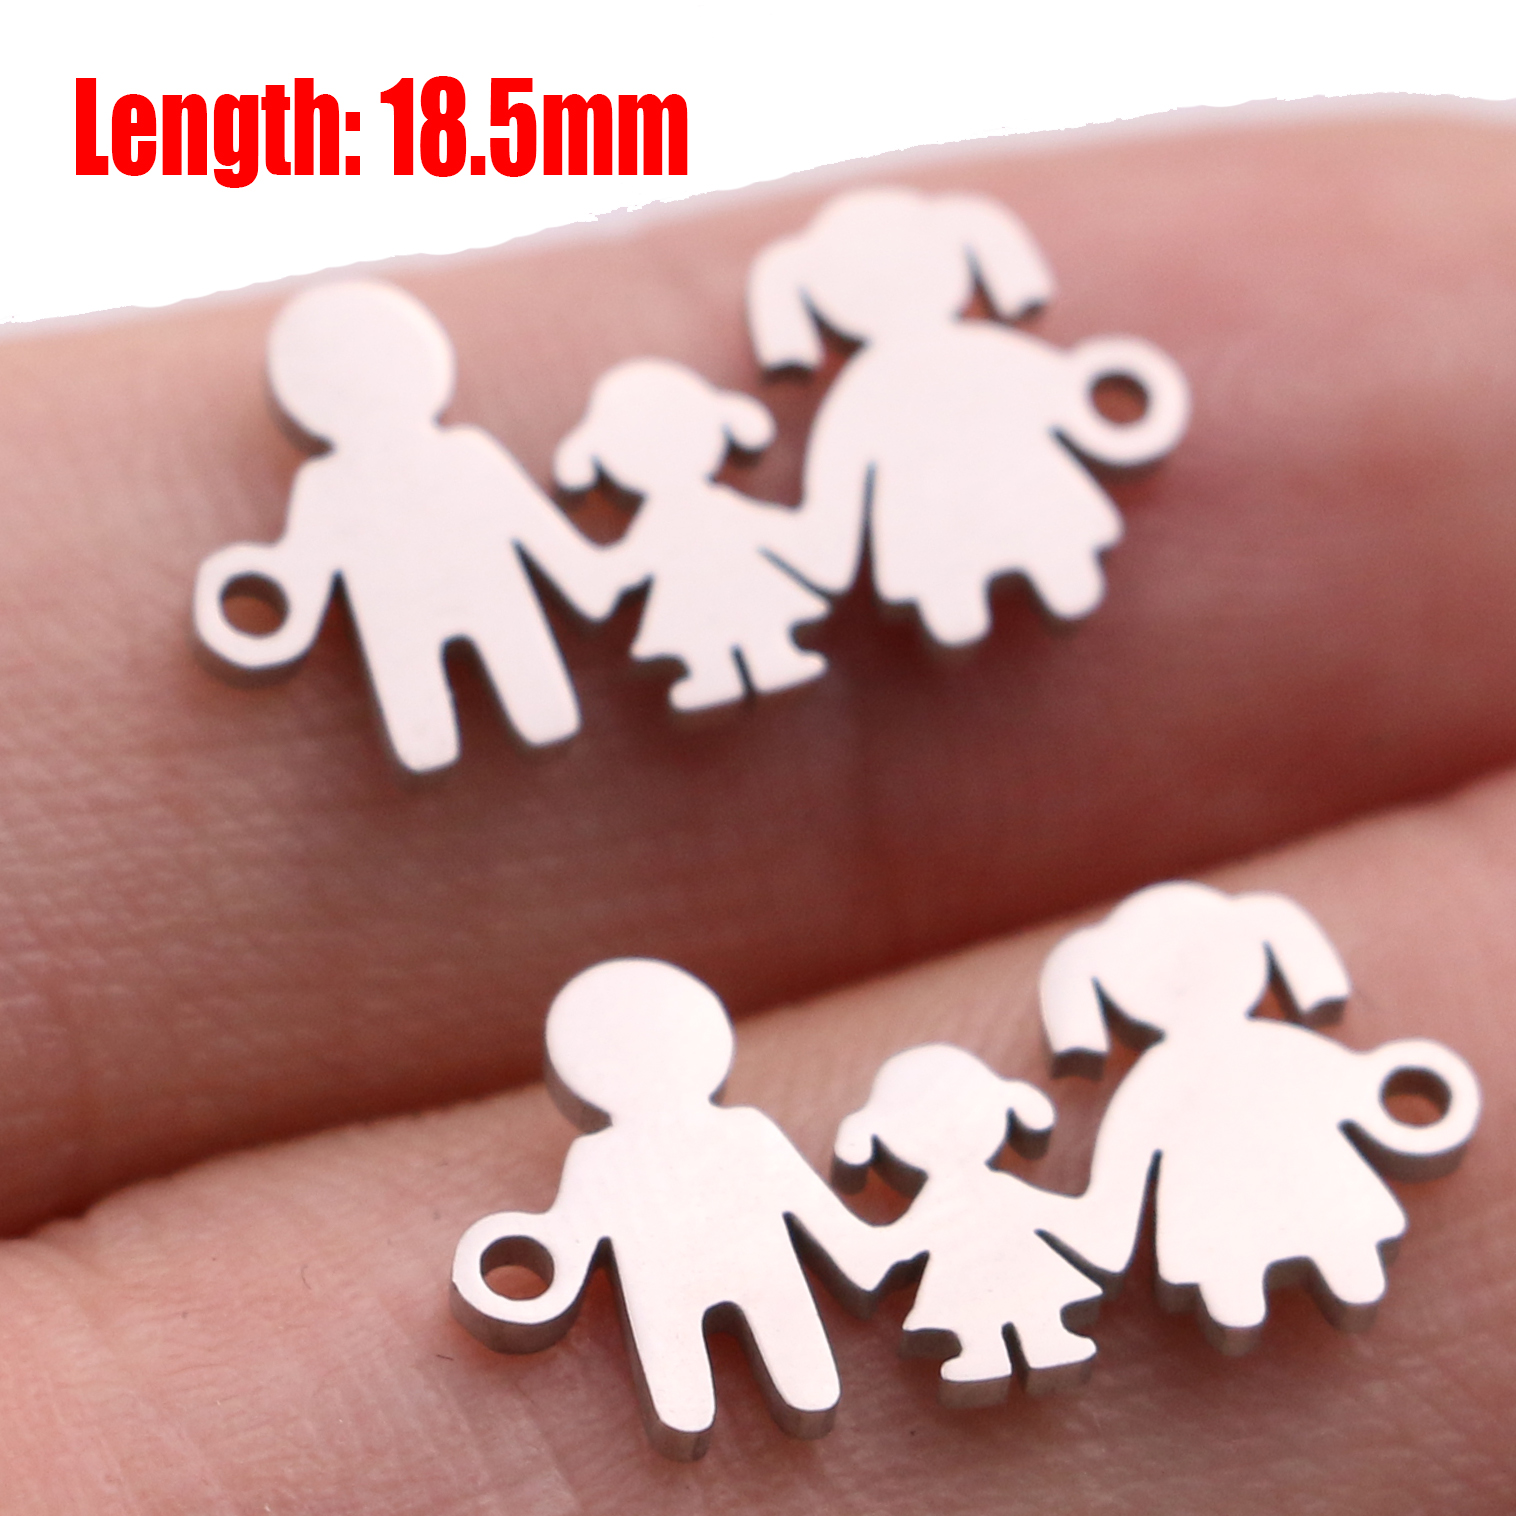 5pcs Family Chain Stainless Steel Pendant Necklace Parents and Children Necklaces Gold/steel Jewelry Gift for Mom Dad New Twice - Цвет: Steel 34